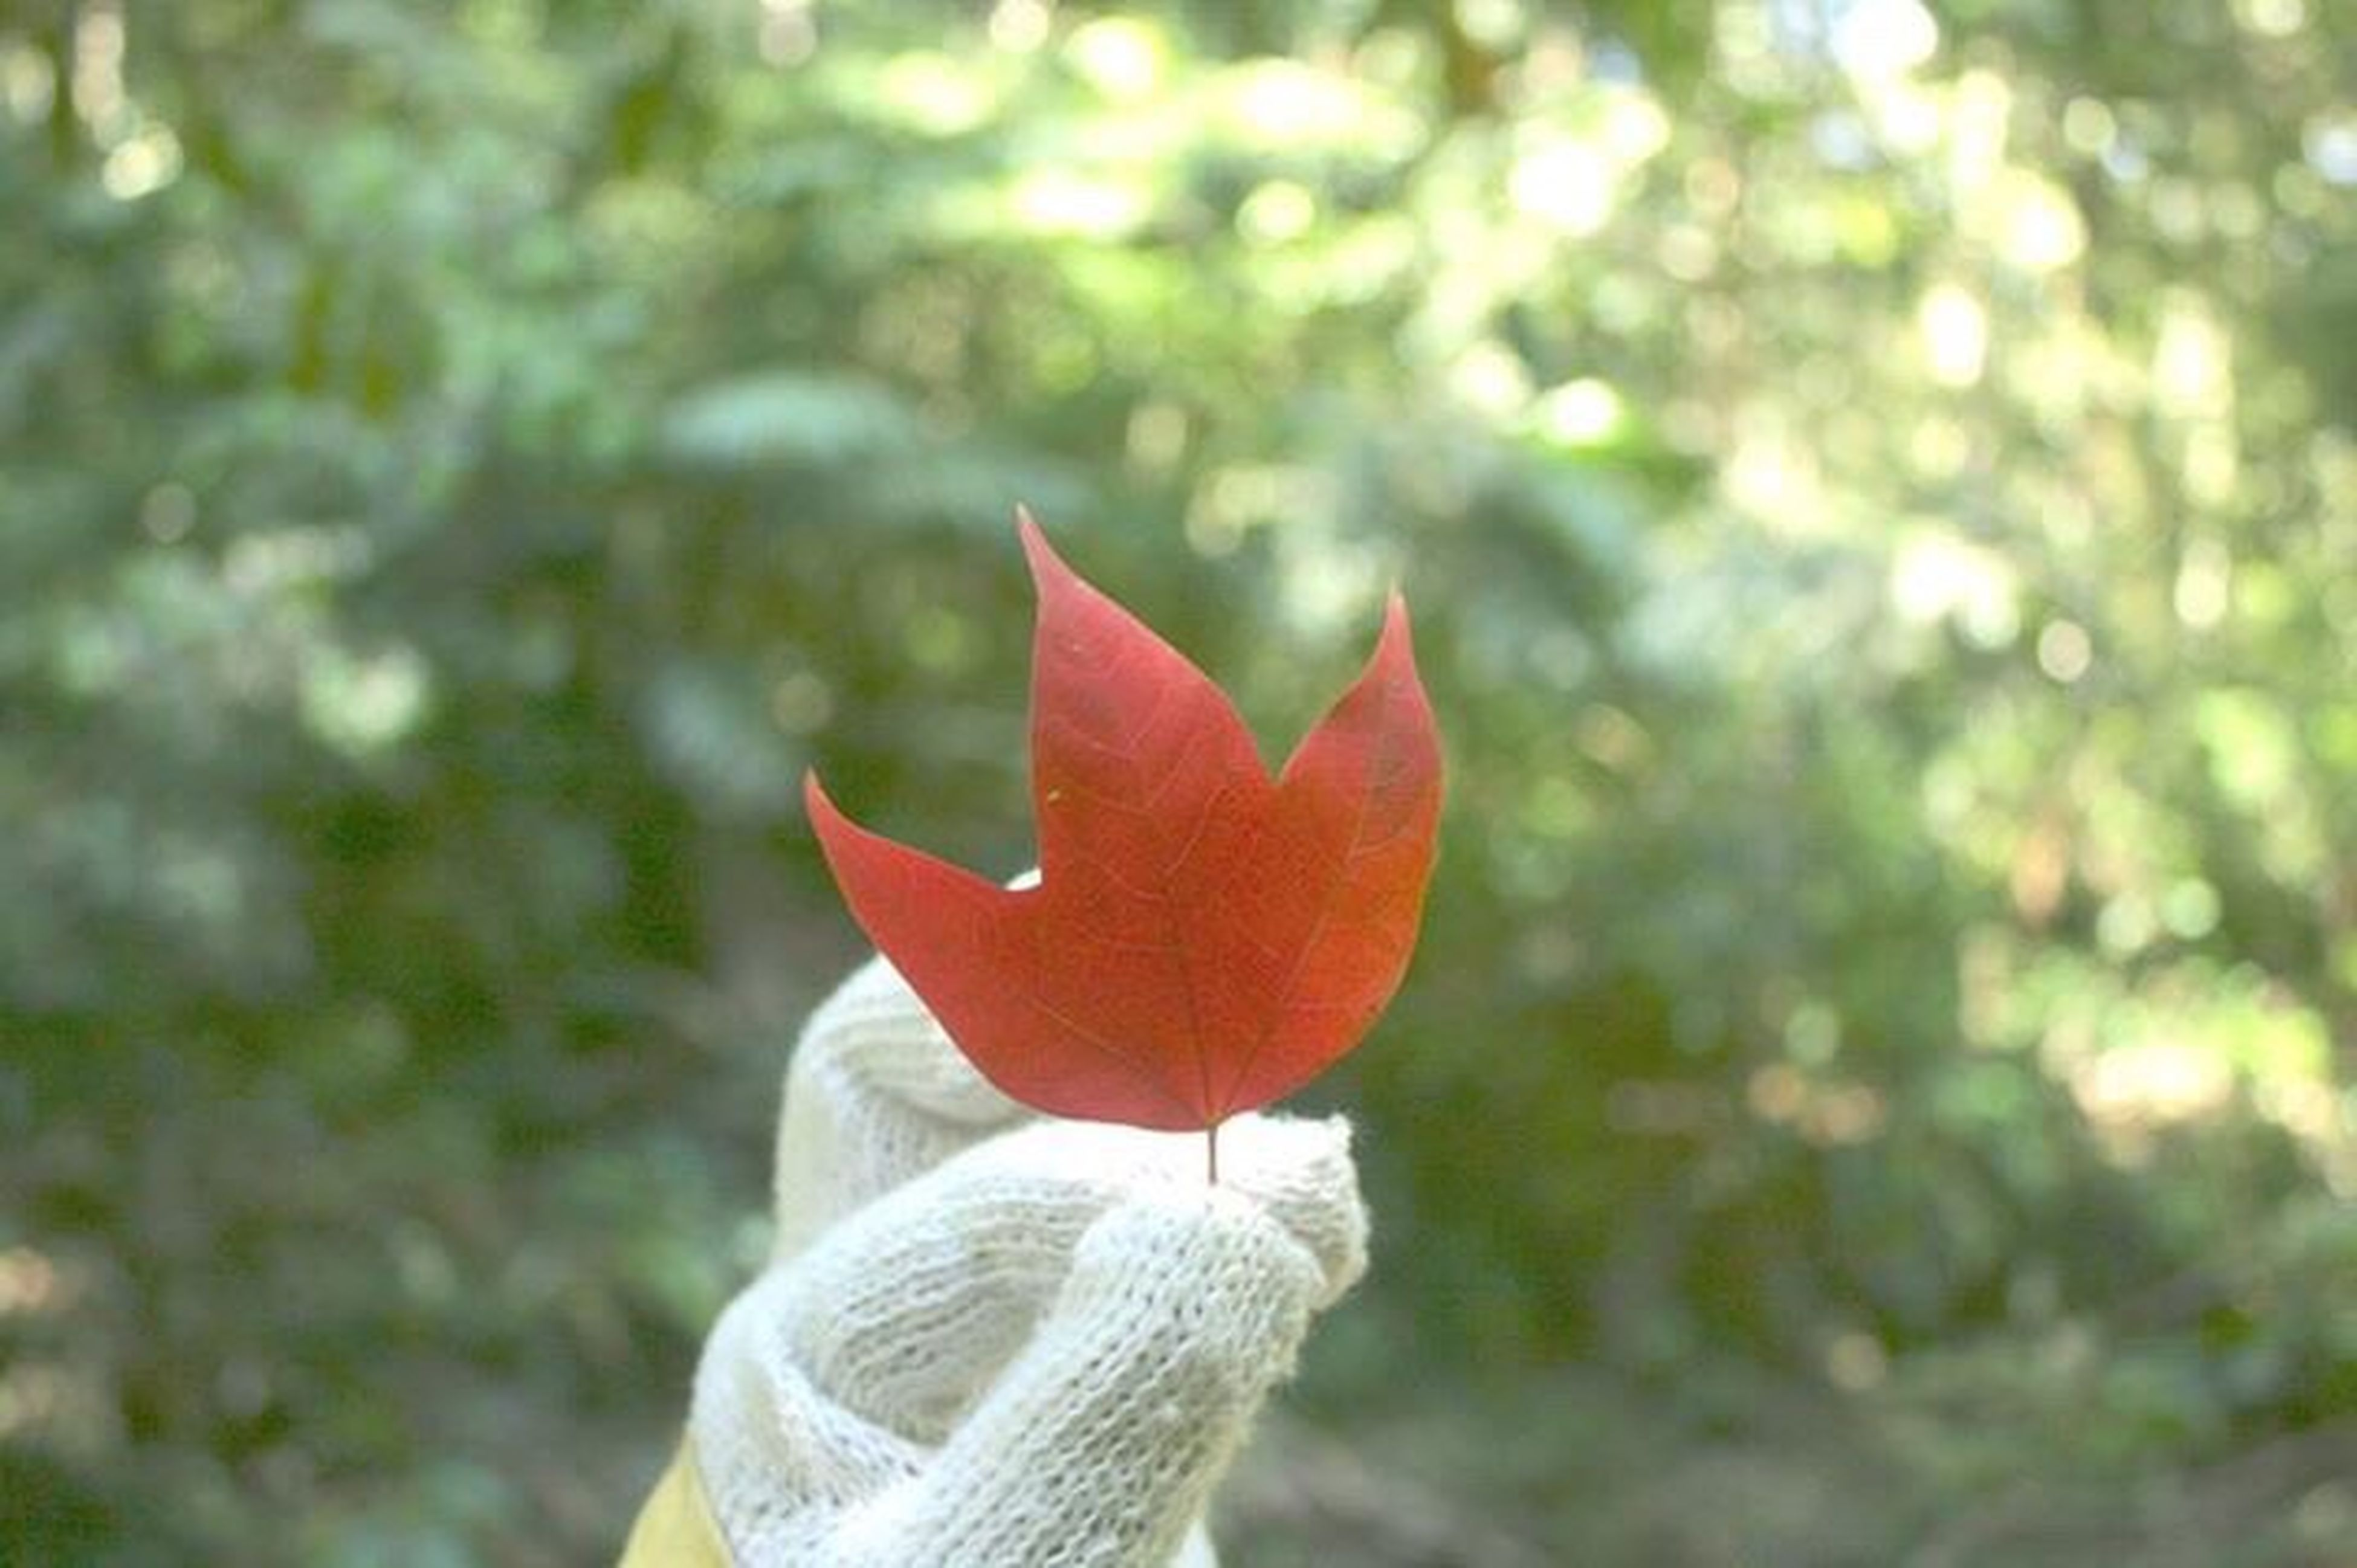 autumn, maple leaf, leaf, red, day, outdoors, focus on foreground, nature, close-up, human body part, one person, tree, beauty in nature, people, human hand